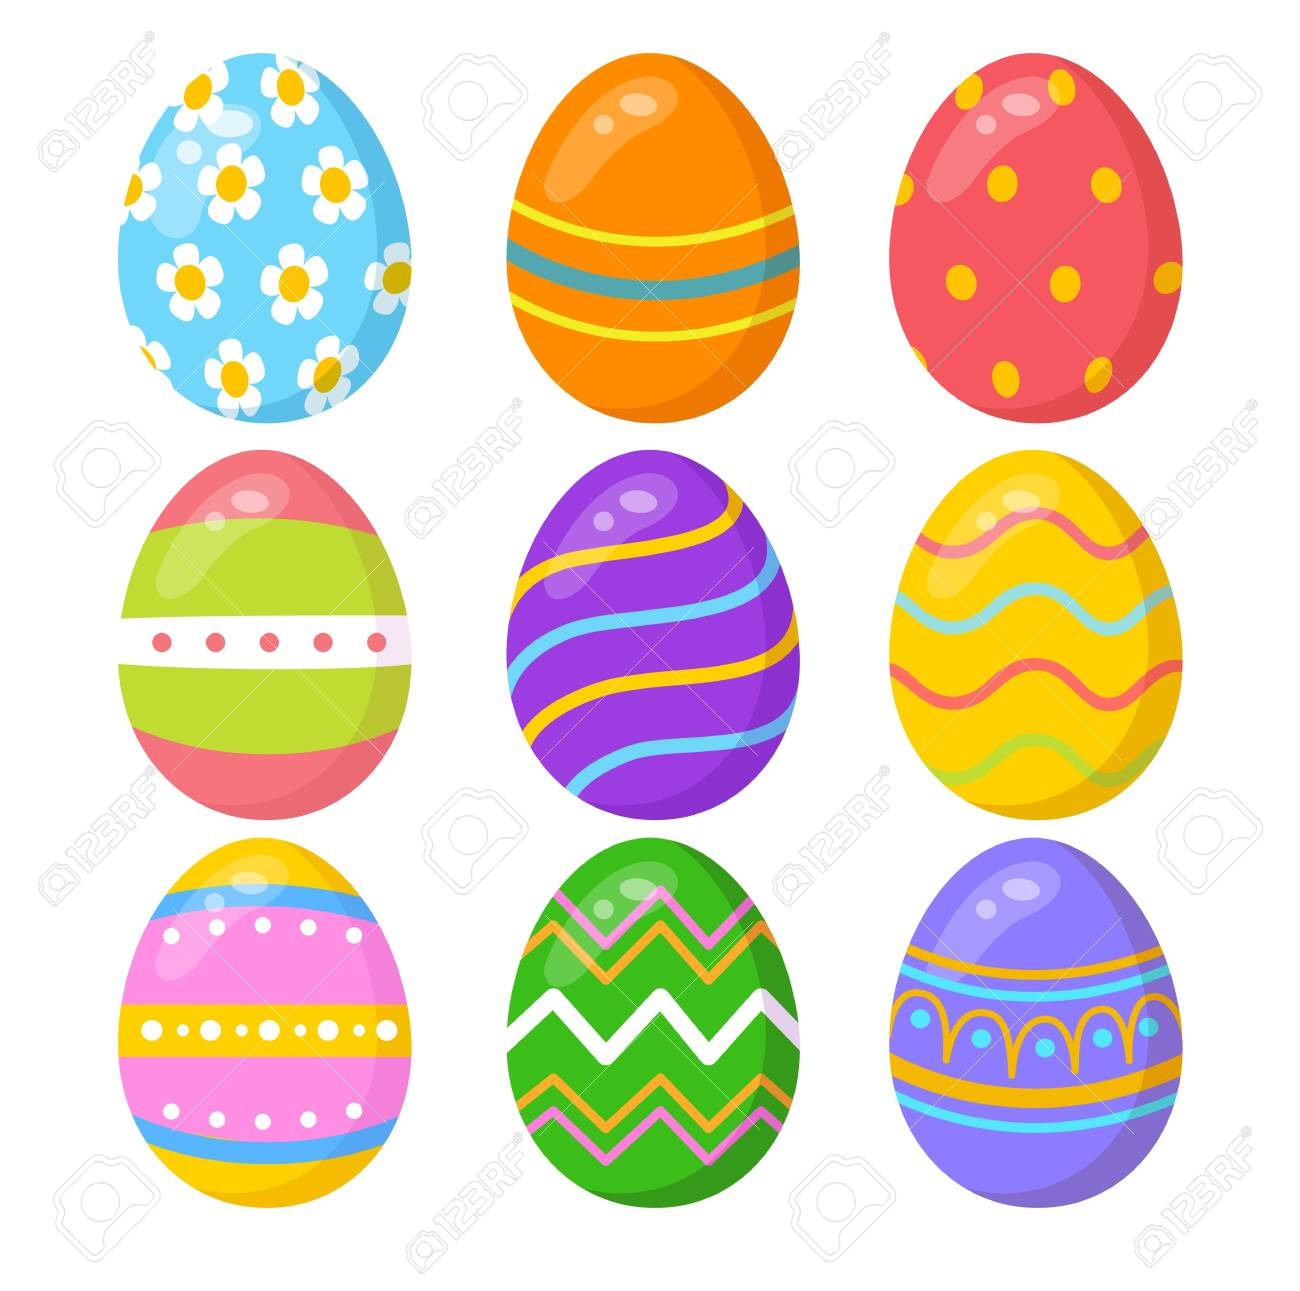 Set of colorful easter eggs on white background - 130346804